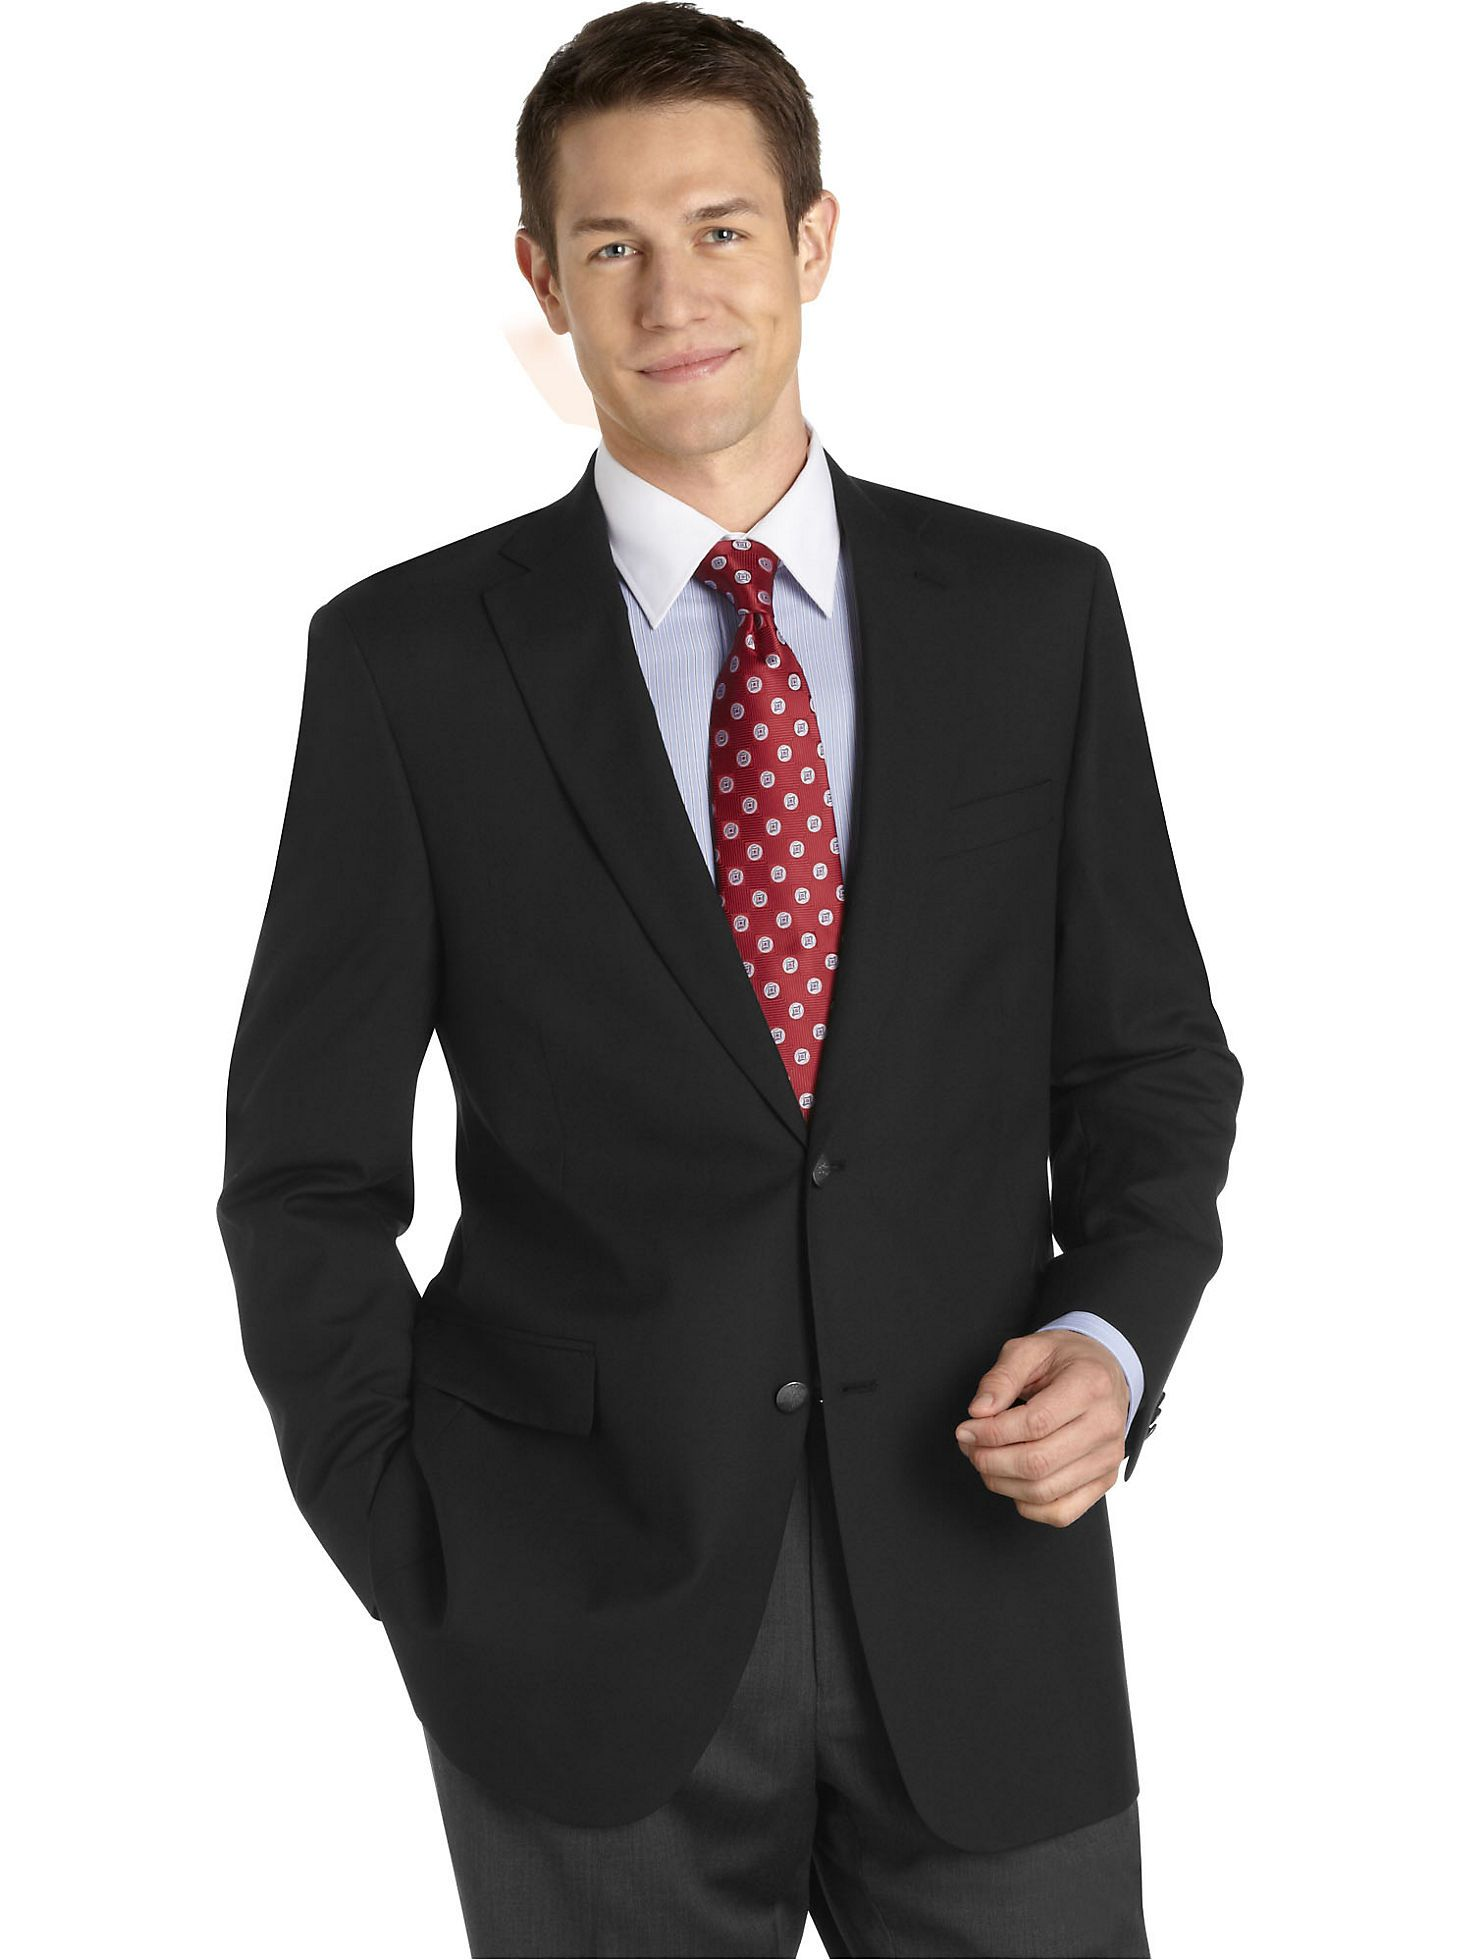 Pin on Job Interview Attire for Men